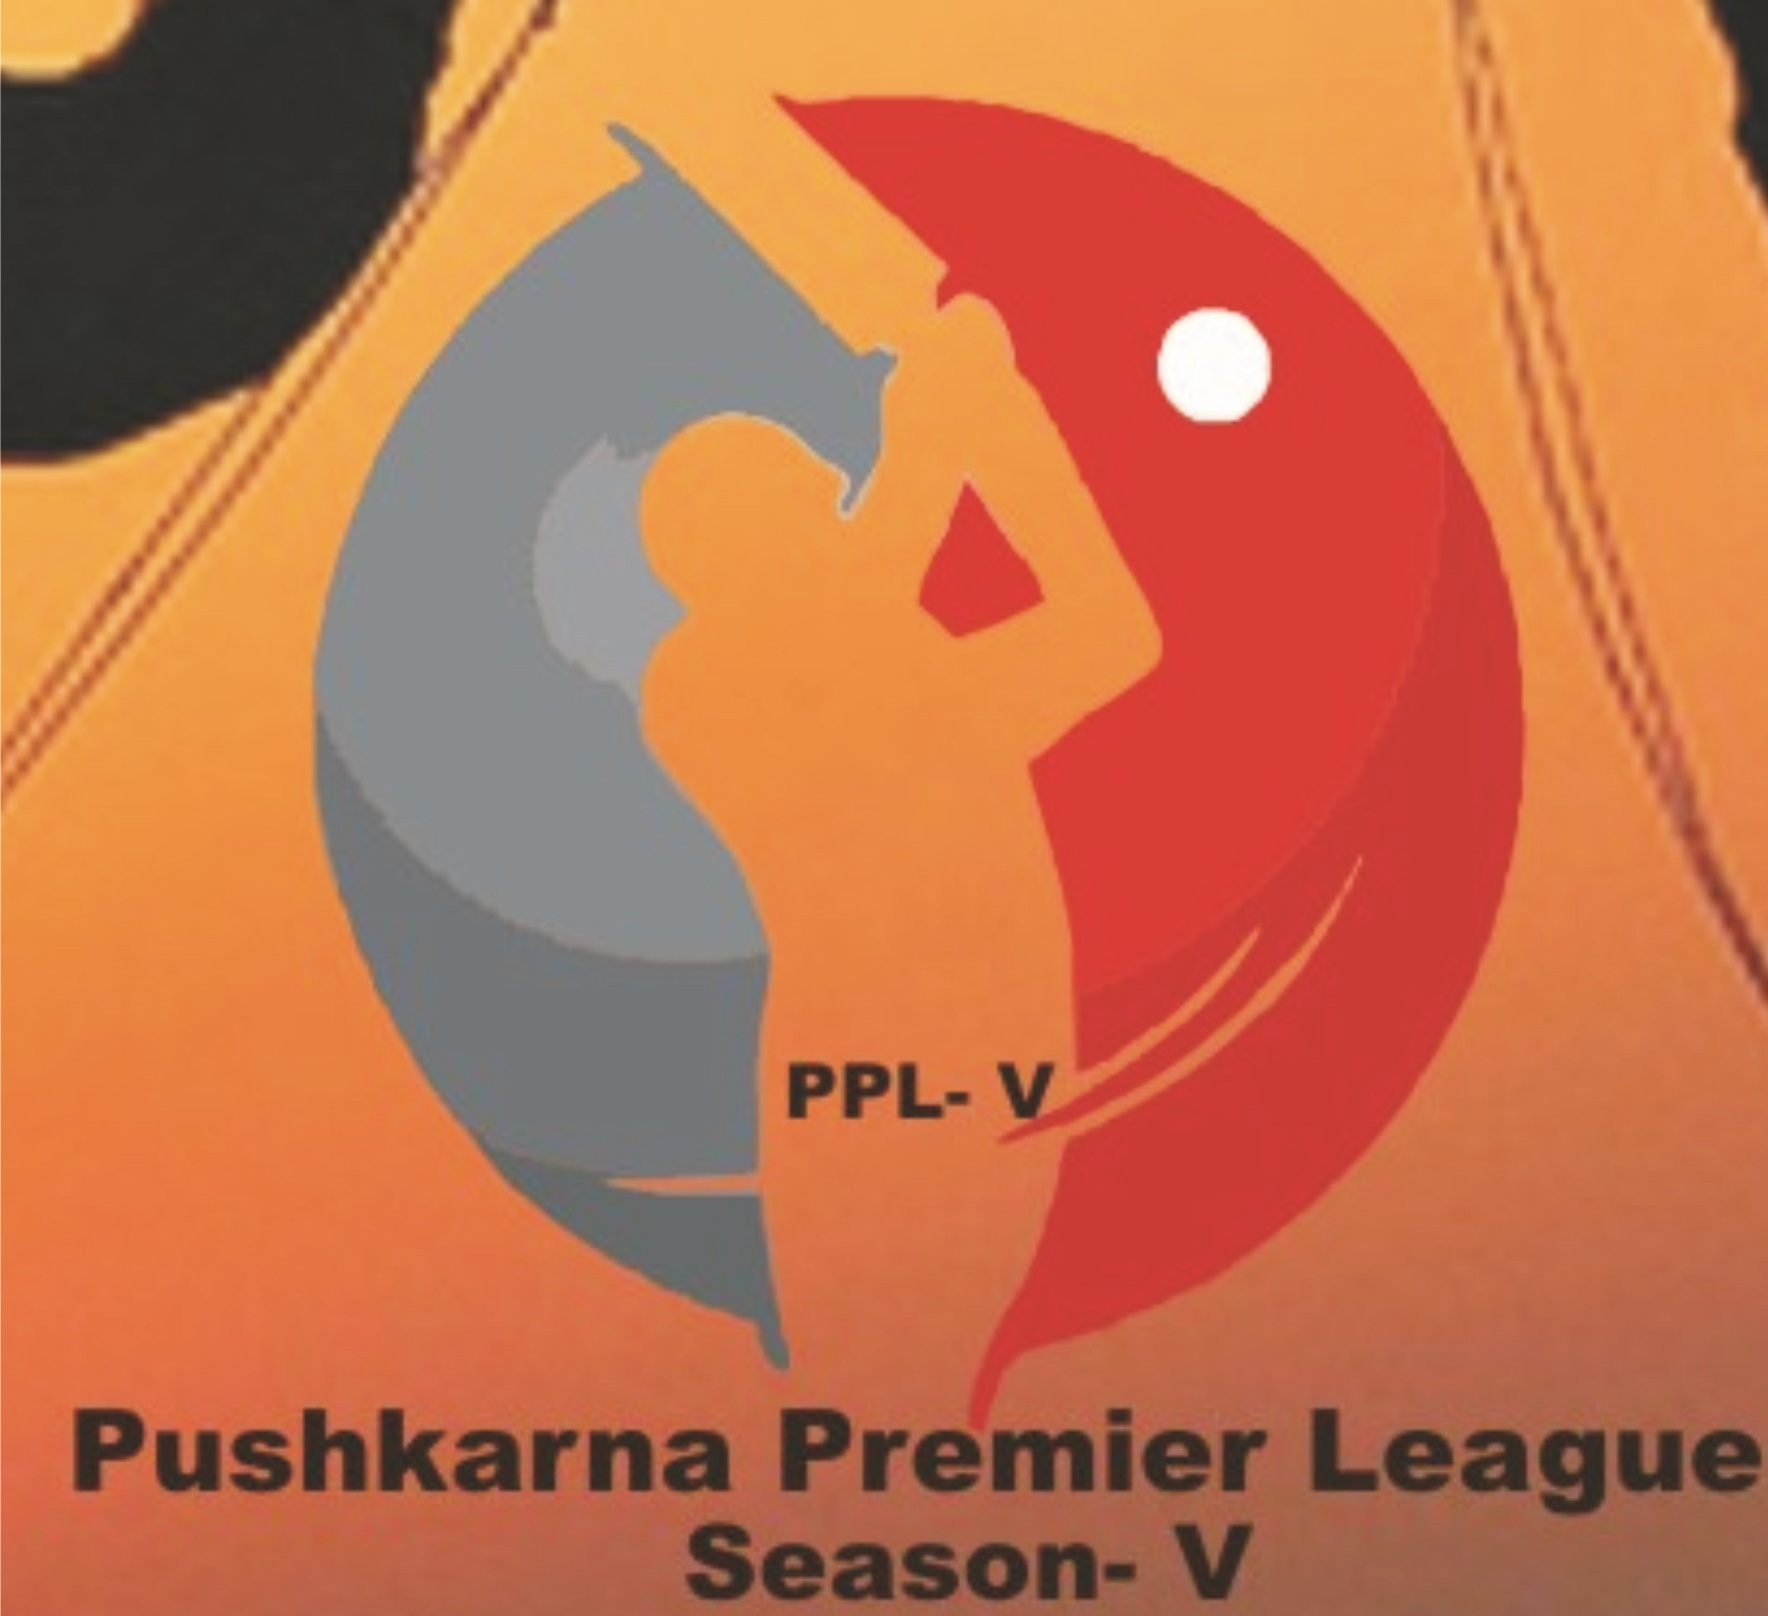 Pushkarna Premier League- Season 5